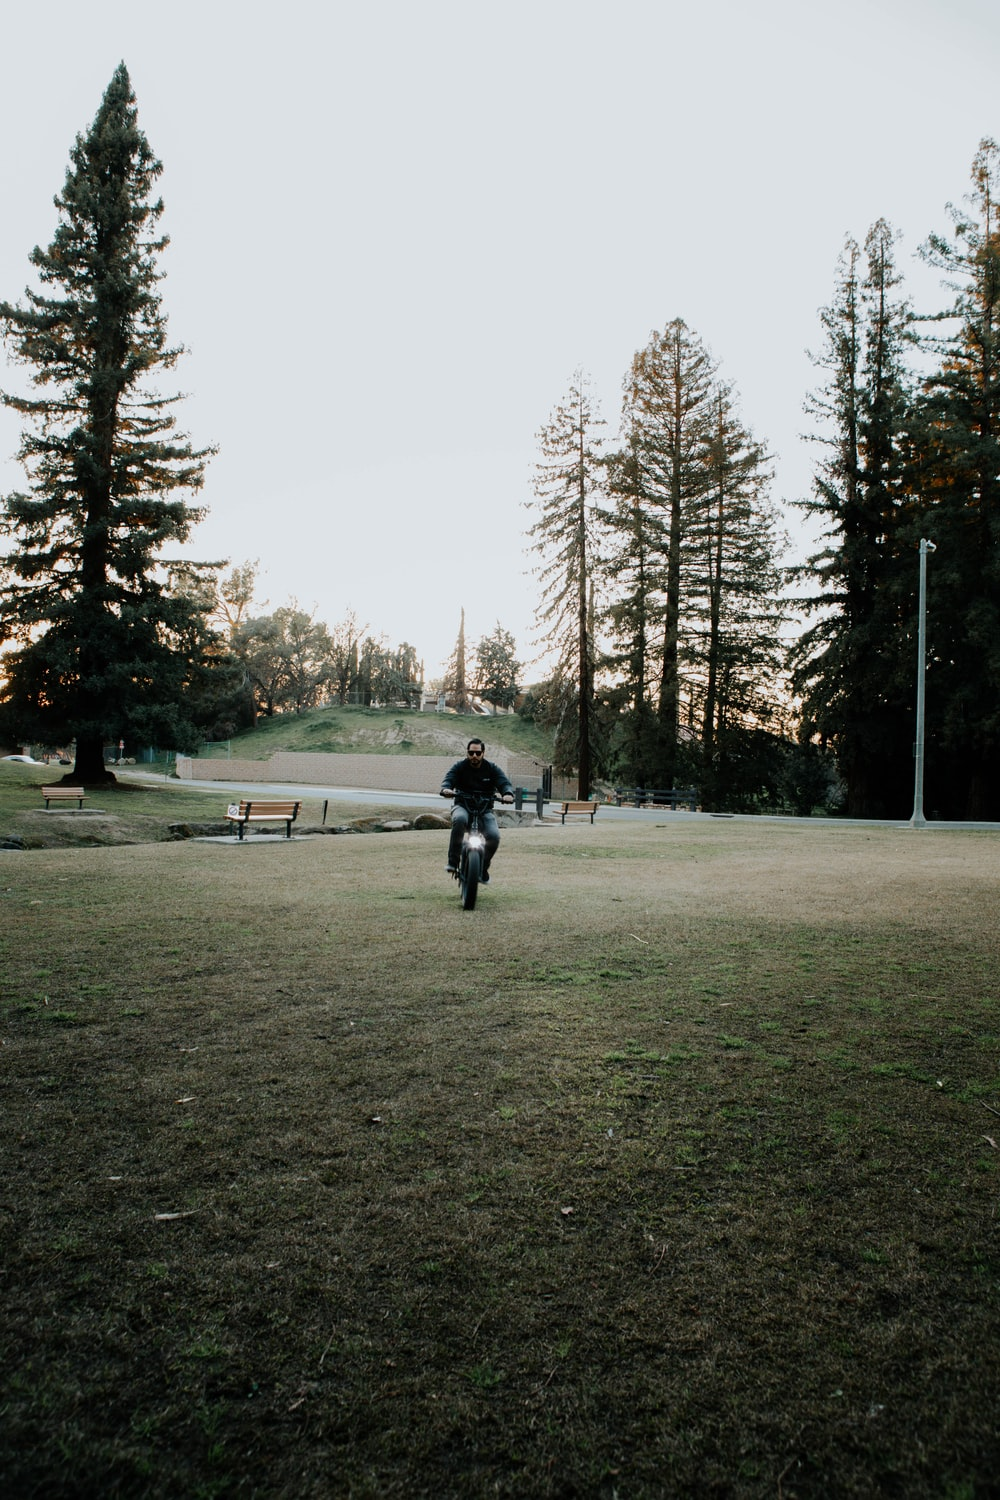 person in black jacket and black pants walking on green grass field during daytime